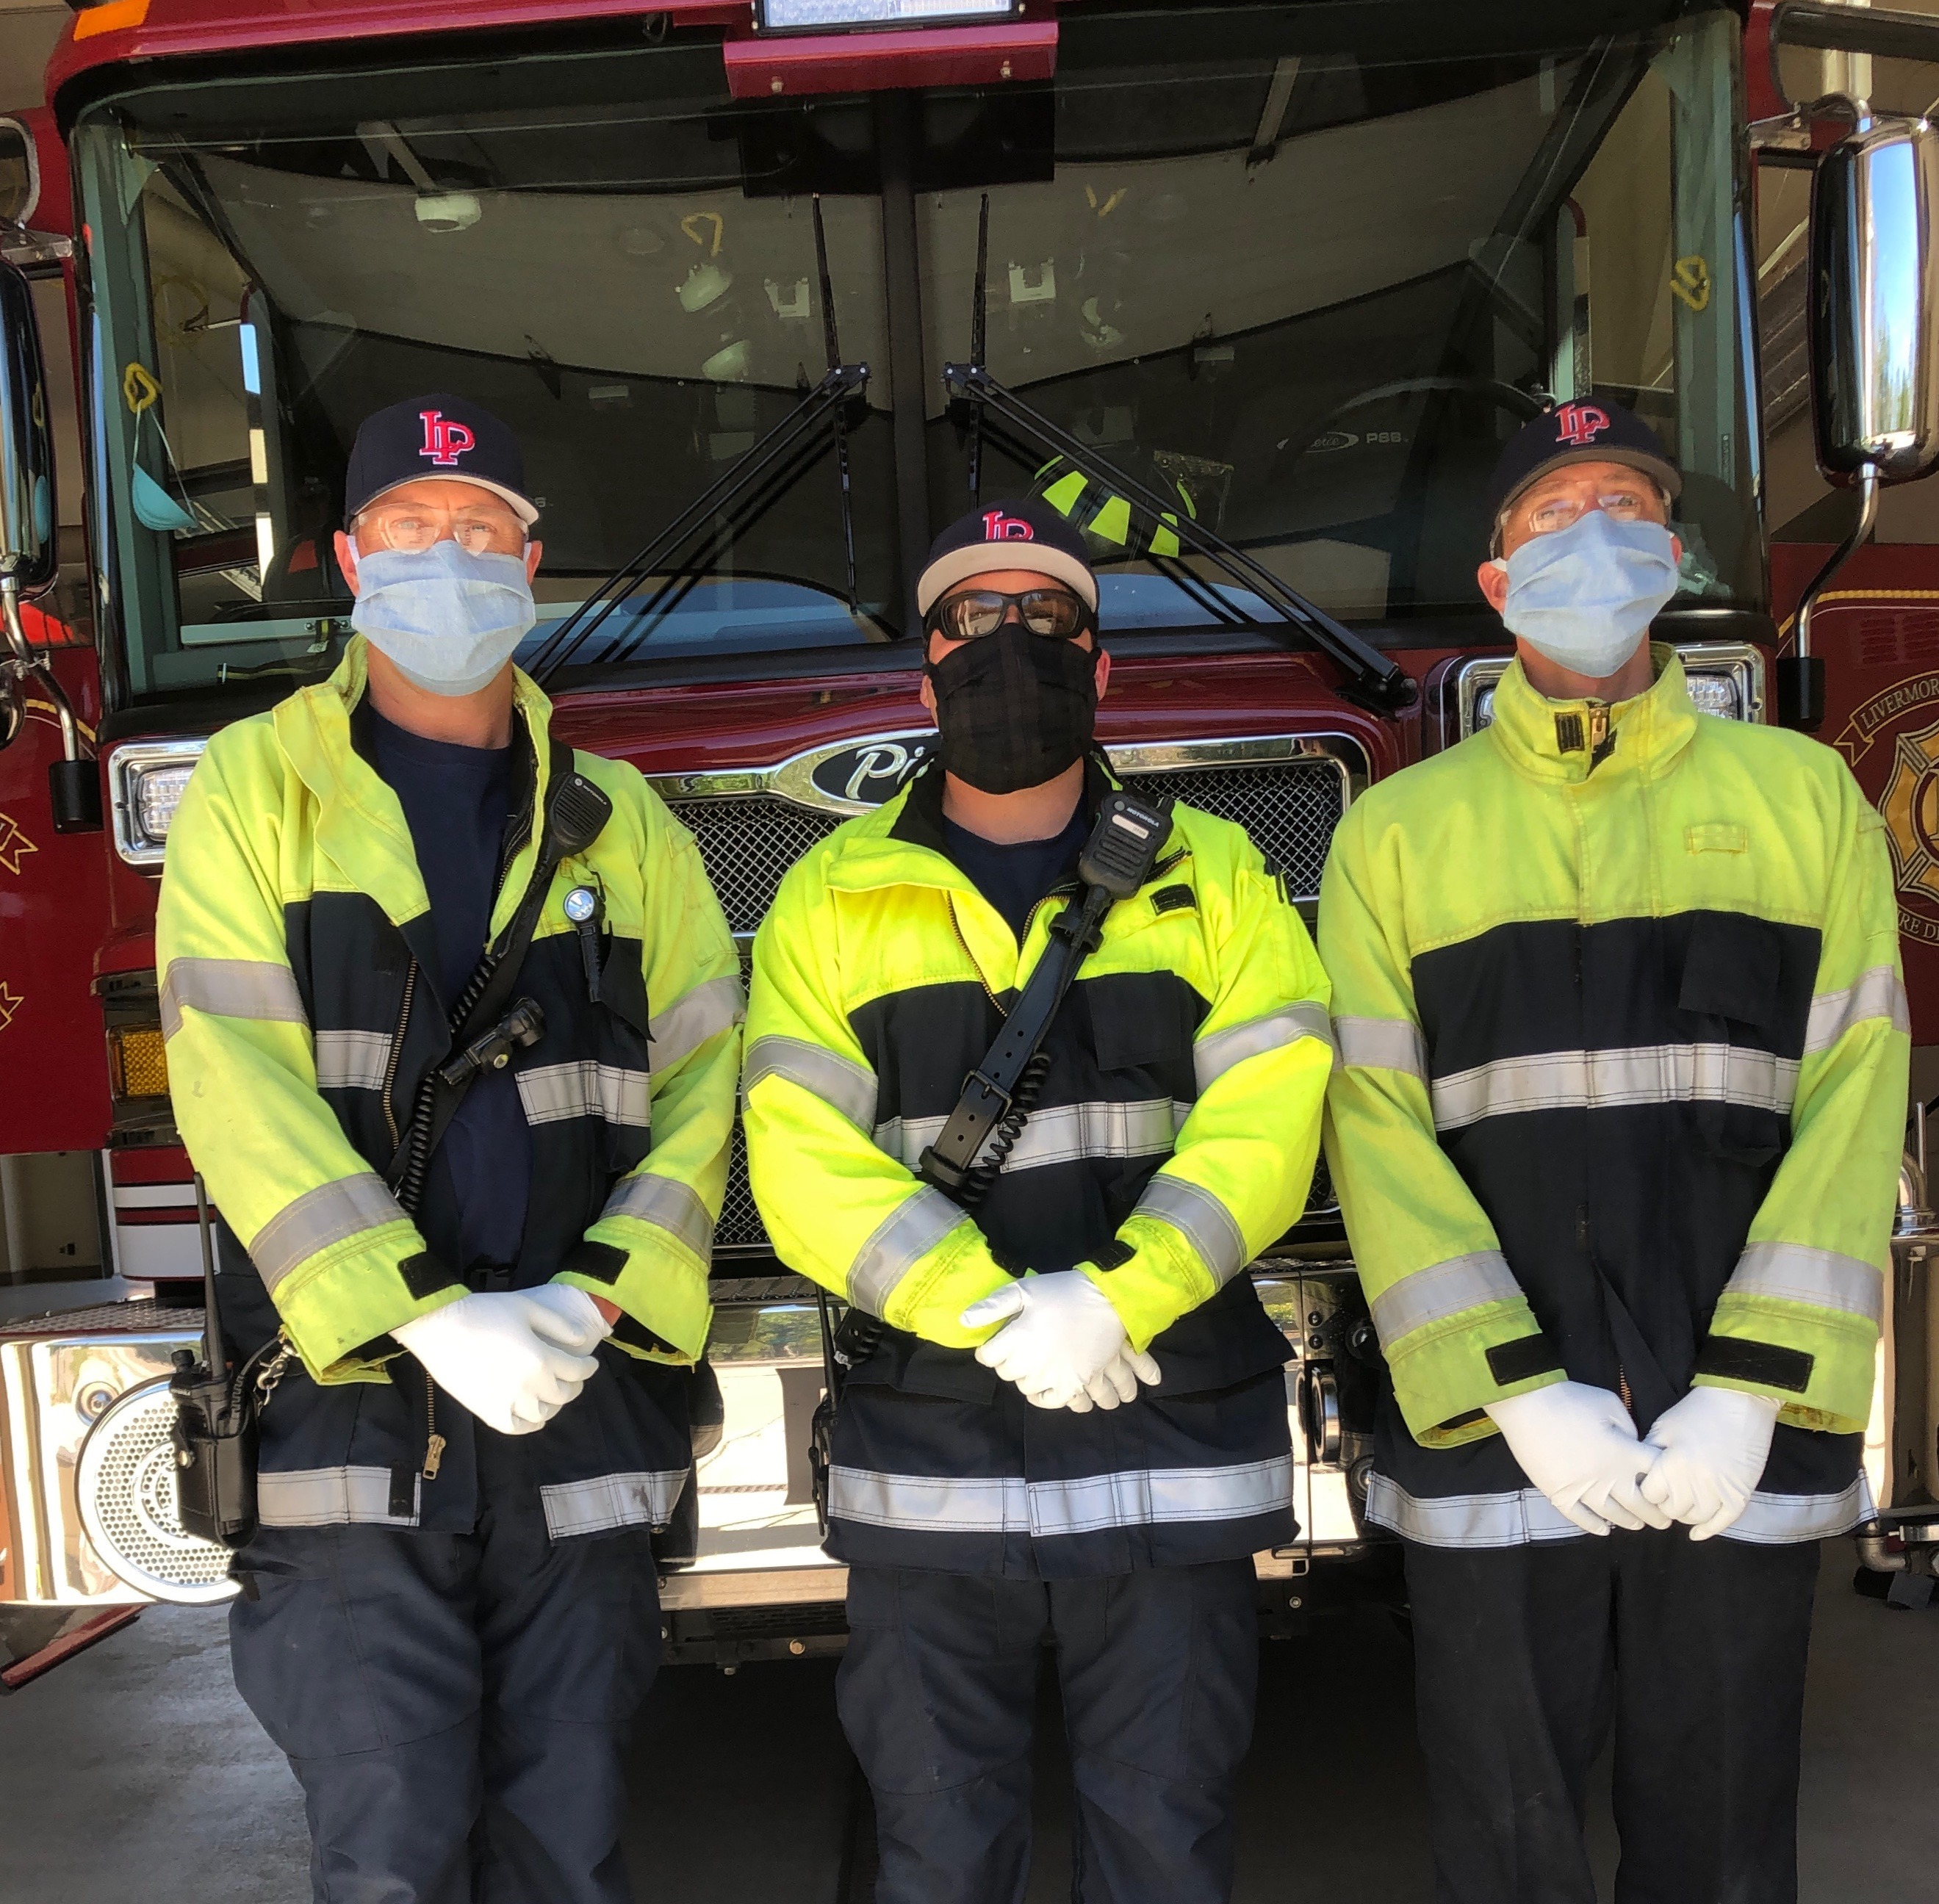 Masks for the City of Livermore/Pleasanton Fire Department